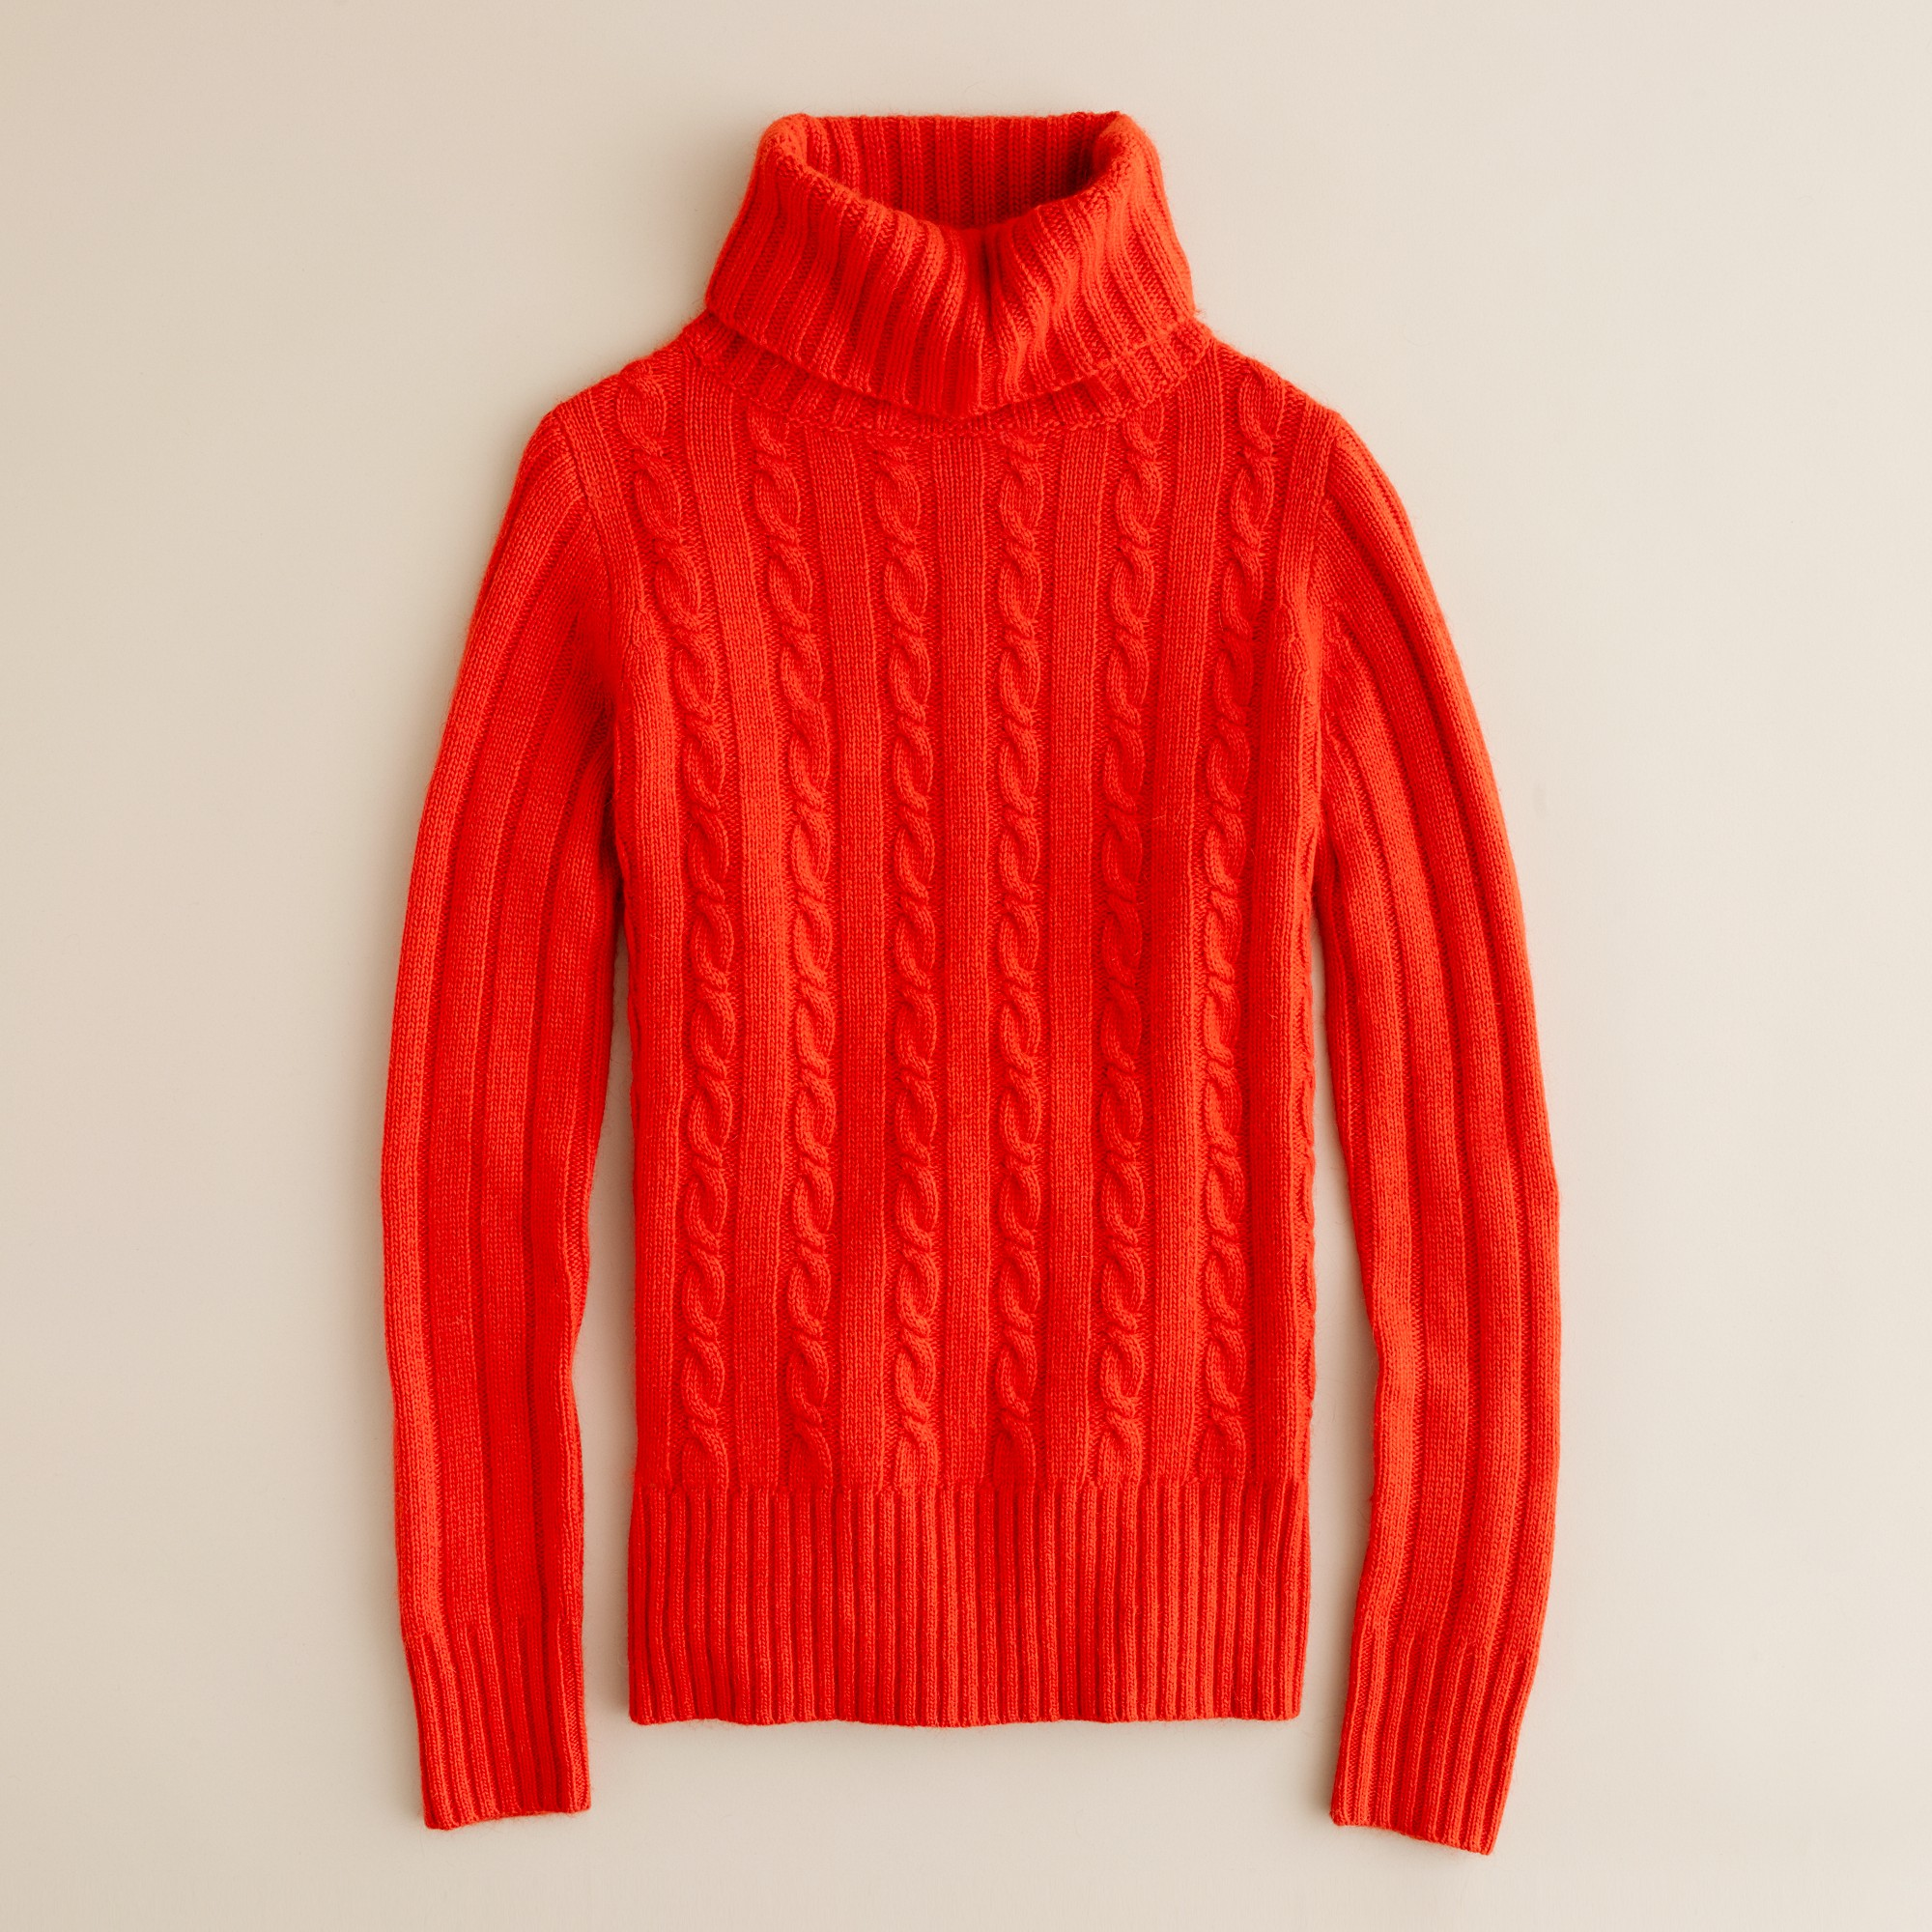 1a2e48ab9 J.crew Cambridge Cable Chunky Turtleneck Sweater in Red